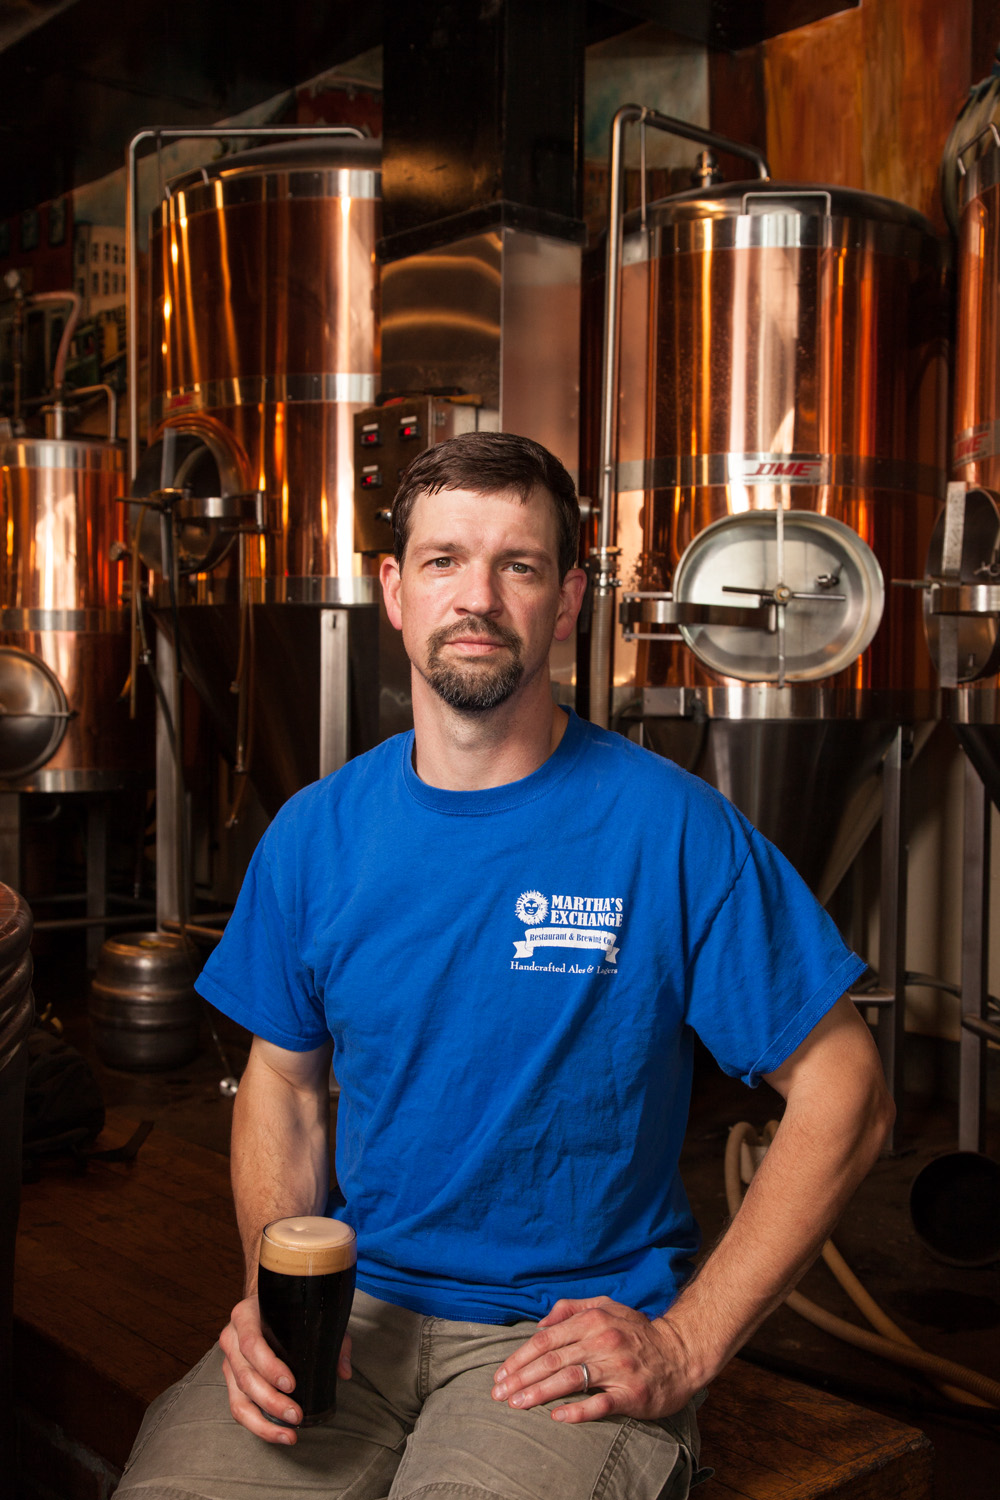 Greg Ouellette, Head Brewer at Martha's Exchange Nashua, NH Established in 1993